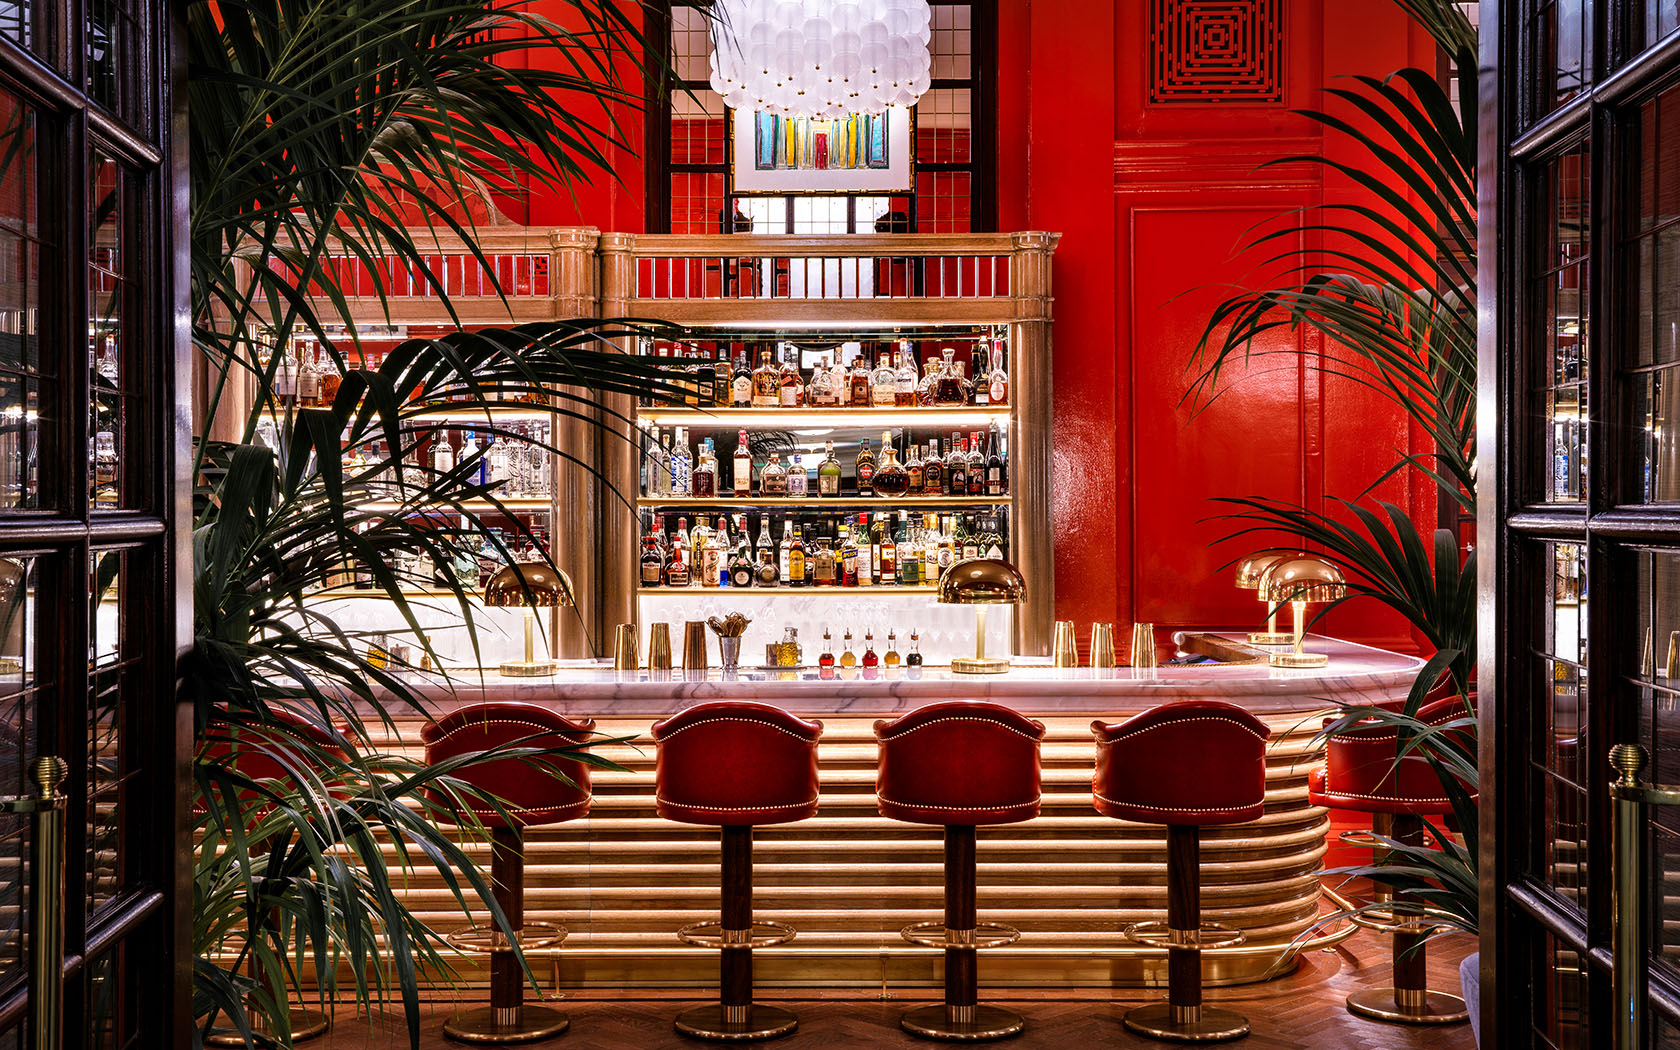 The Coral Room - 16-22 Great Russell StreetA Coral coloured bar in the heart of Bloomsbury designed by acclaimed Martin Brudnizki. Open from 10am daily for coffee, lunch, cocktails and English sparkling wine! An interior straight out of a Wes Anderson movie! #PaintTheTownCoral